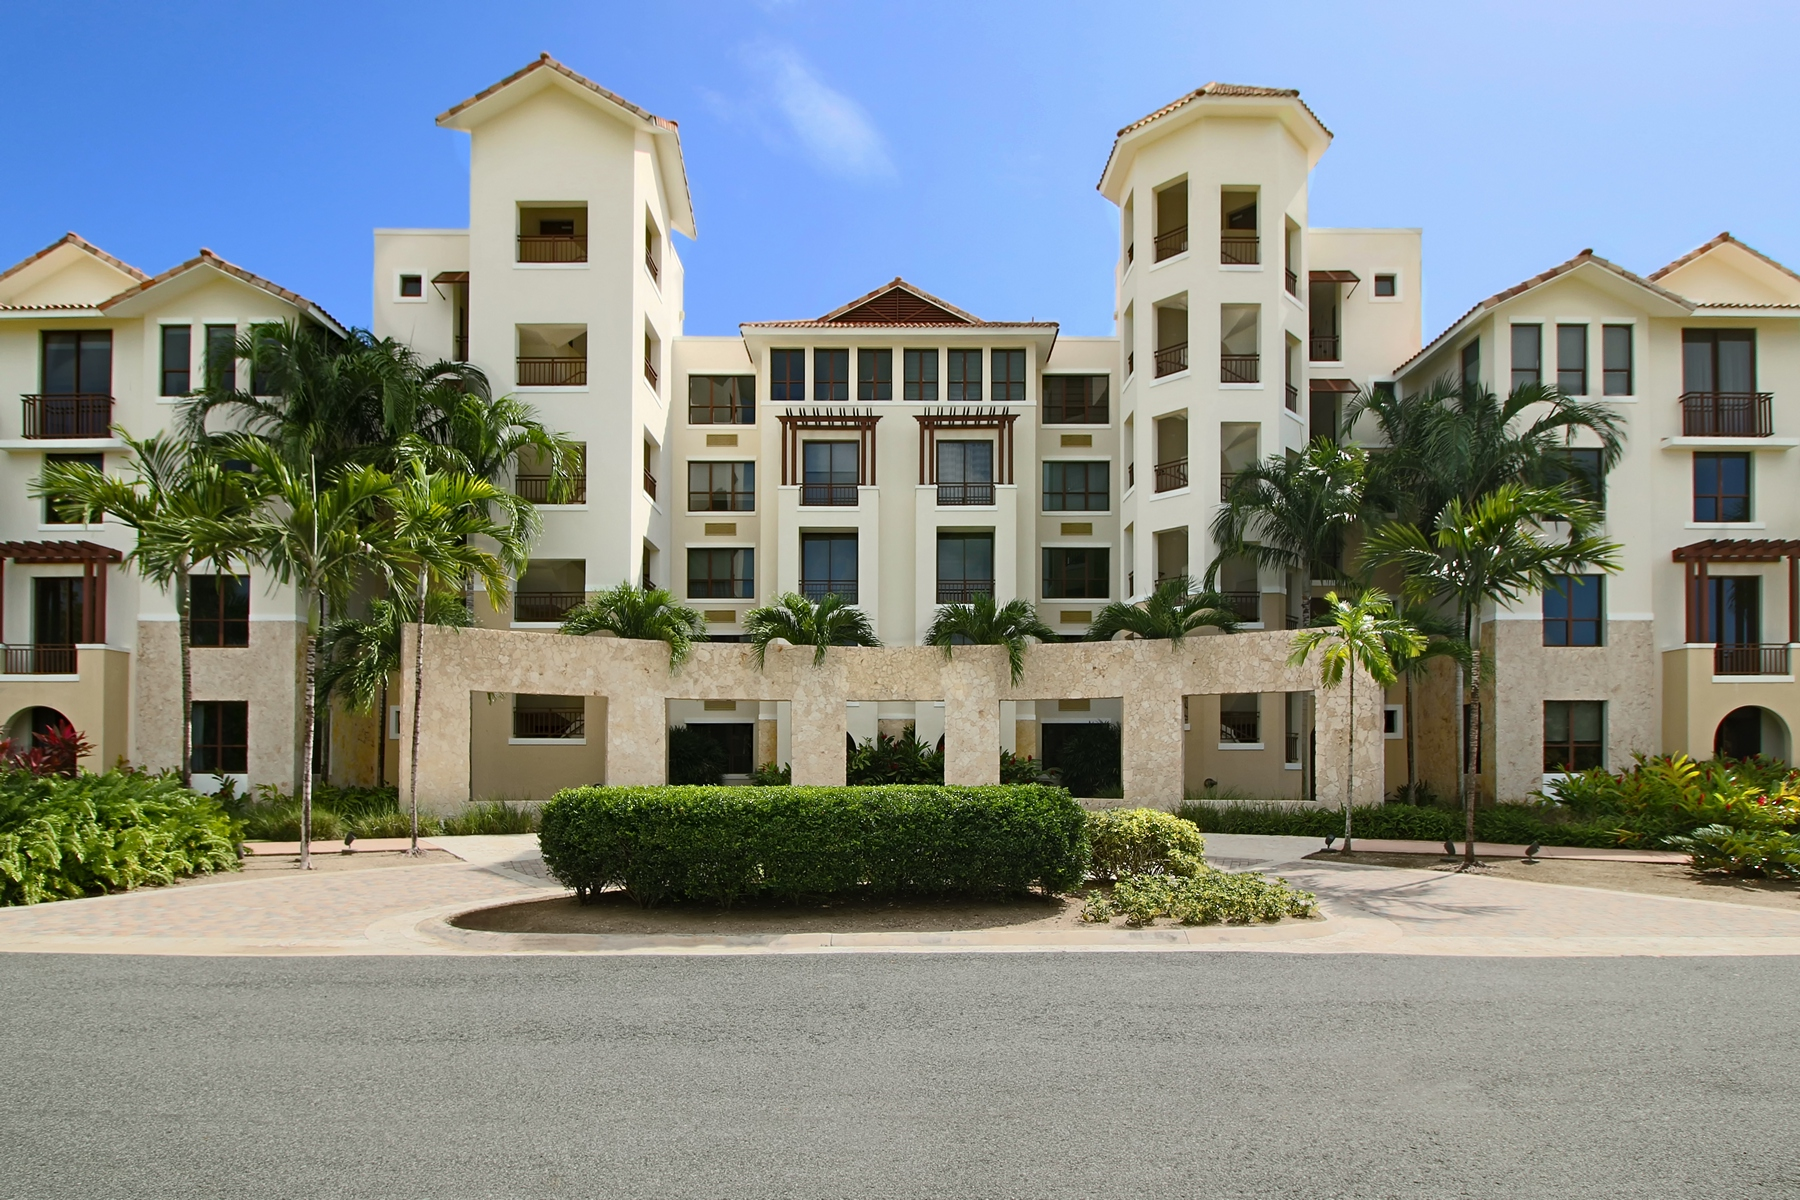 Additional photo for property listing at Solarea Beach Resort and Yacht Club 238 Candelero Drive Solarea Beach Resort and Yacht Club Palmas Del Mar, 波多黎各 00791 波多黎各